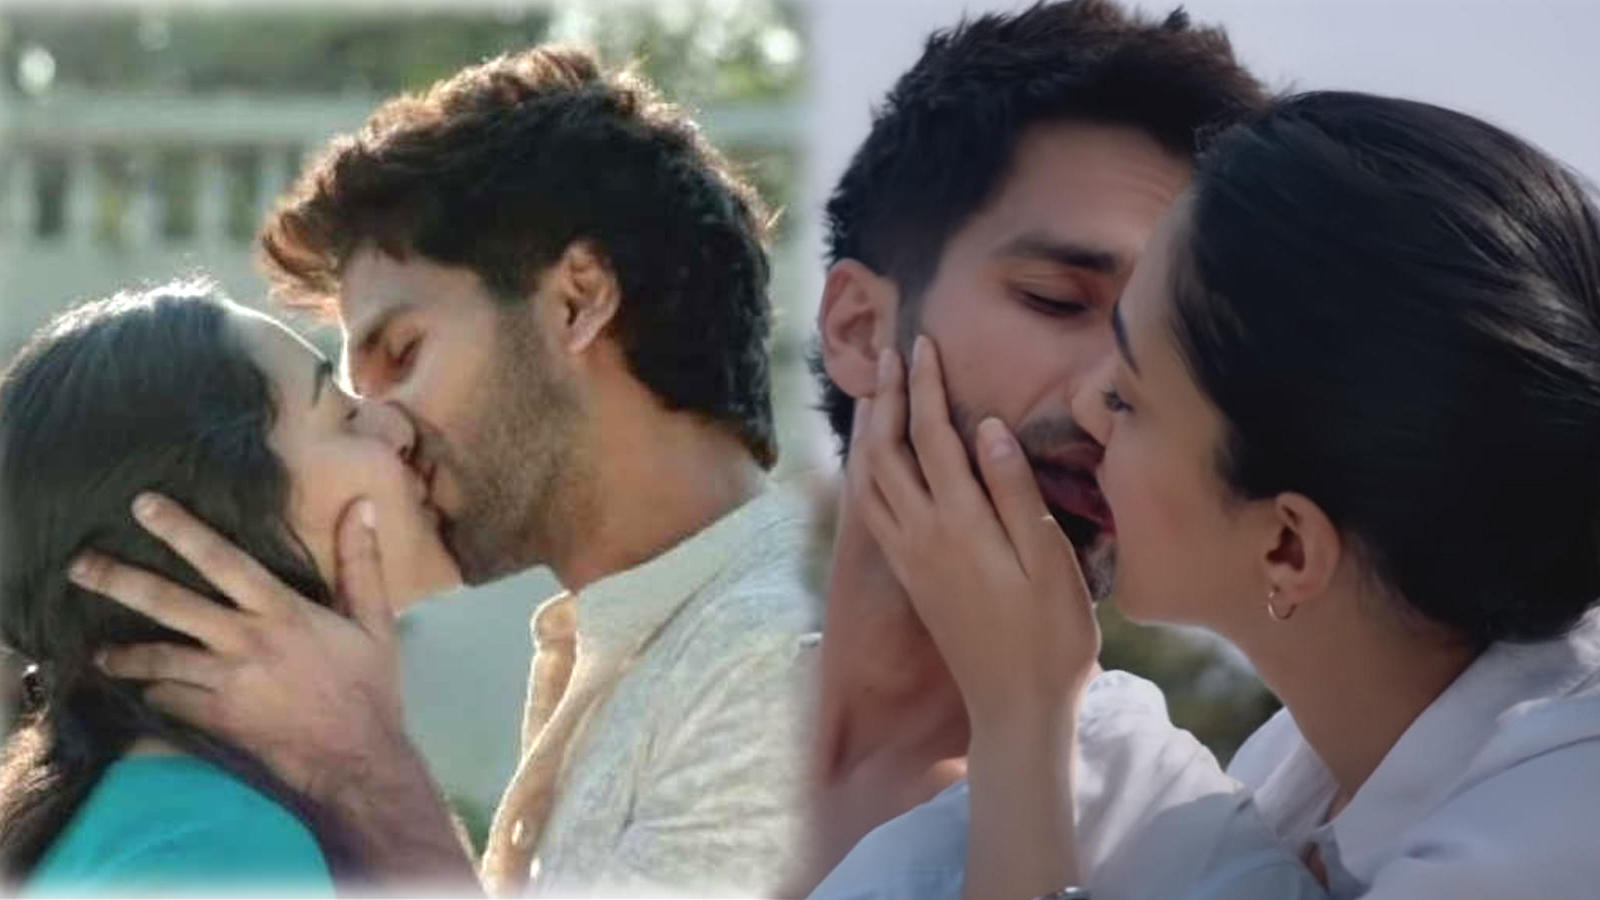 Kiara Advani finally opens up on lip-lock scenes with Shahid Kapoor in 'Kabir Singh', says it's very normal